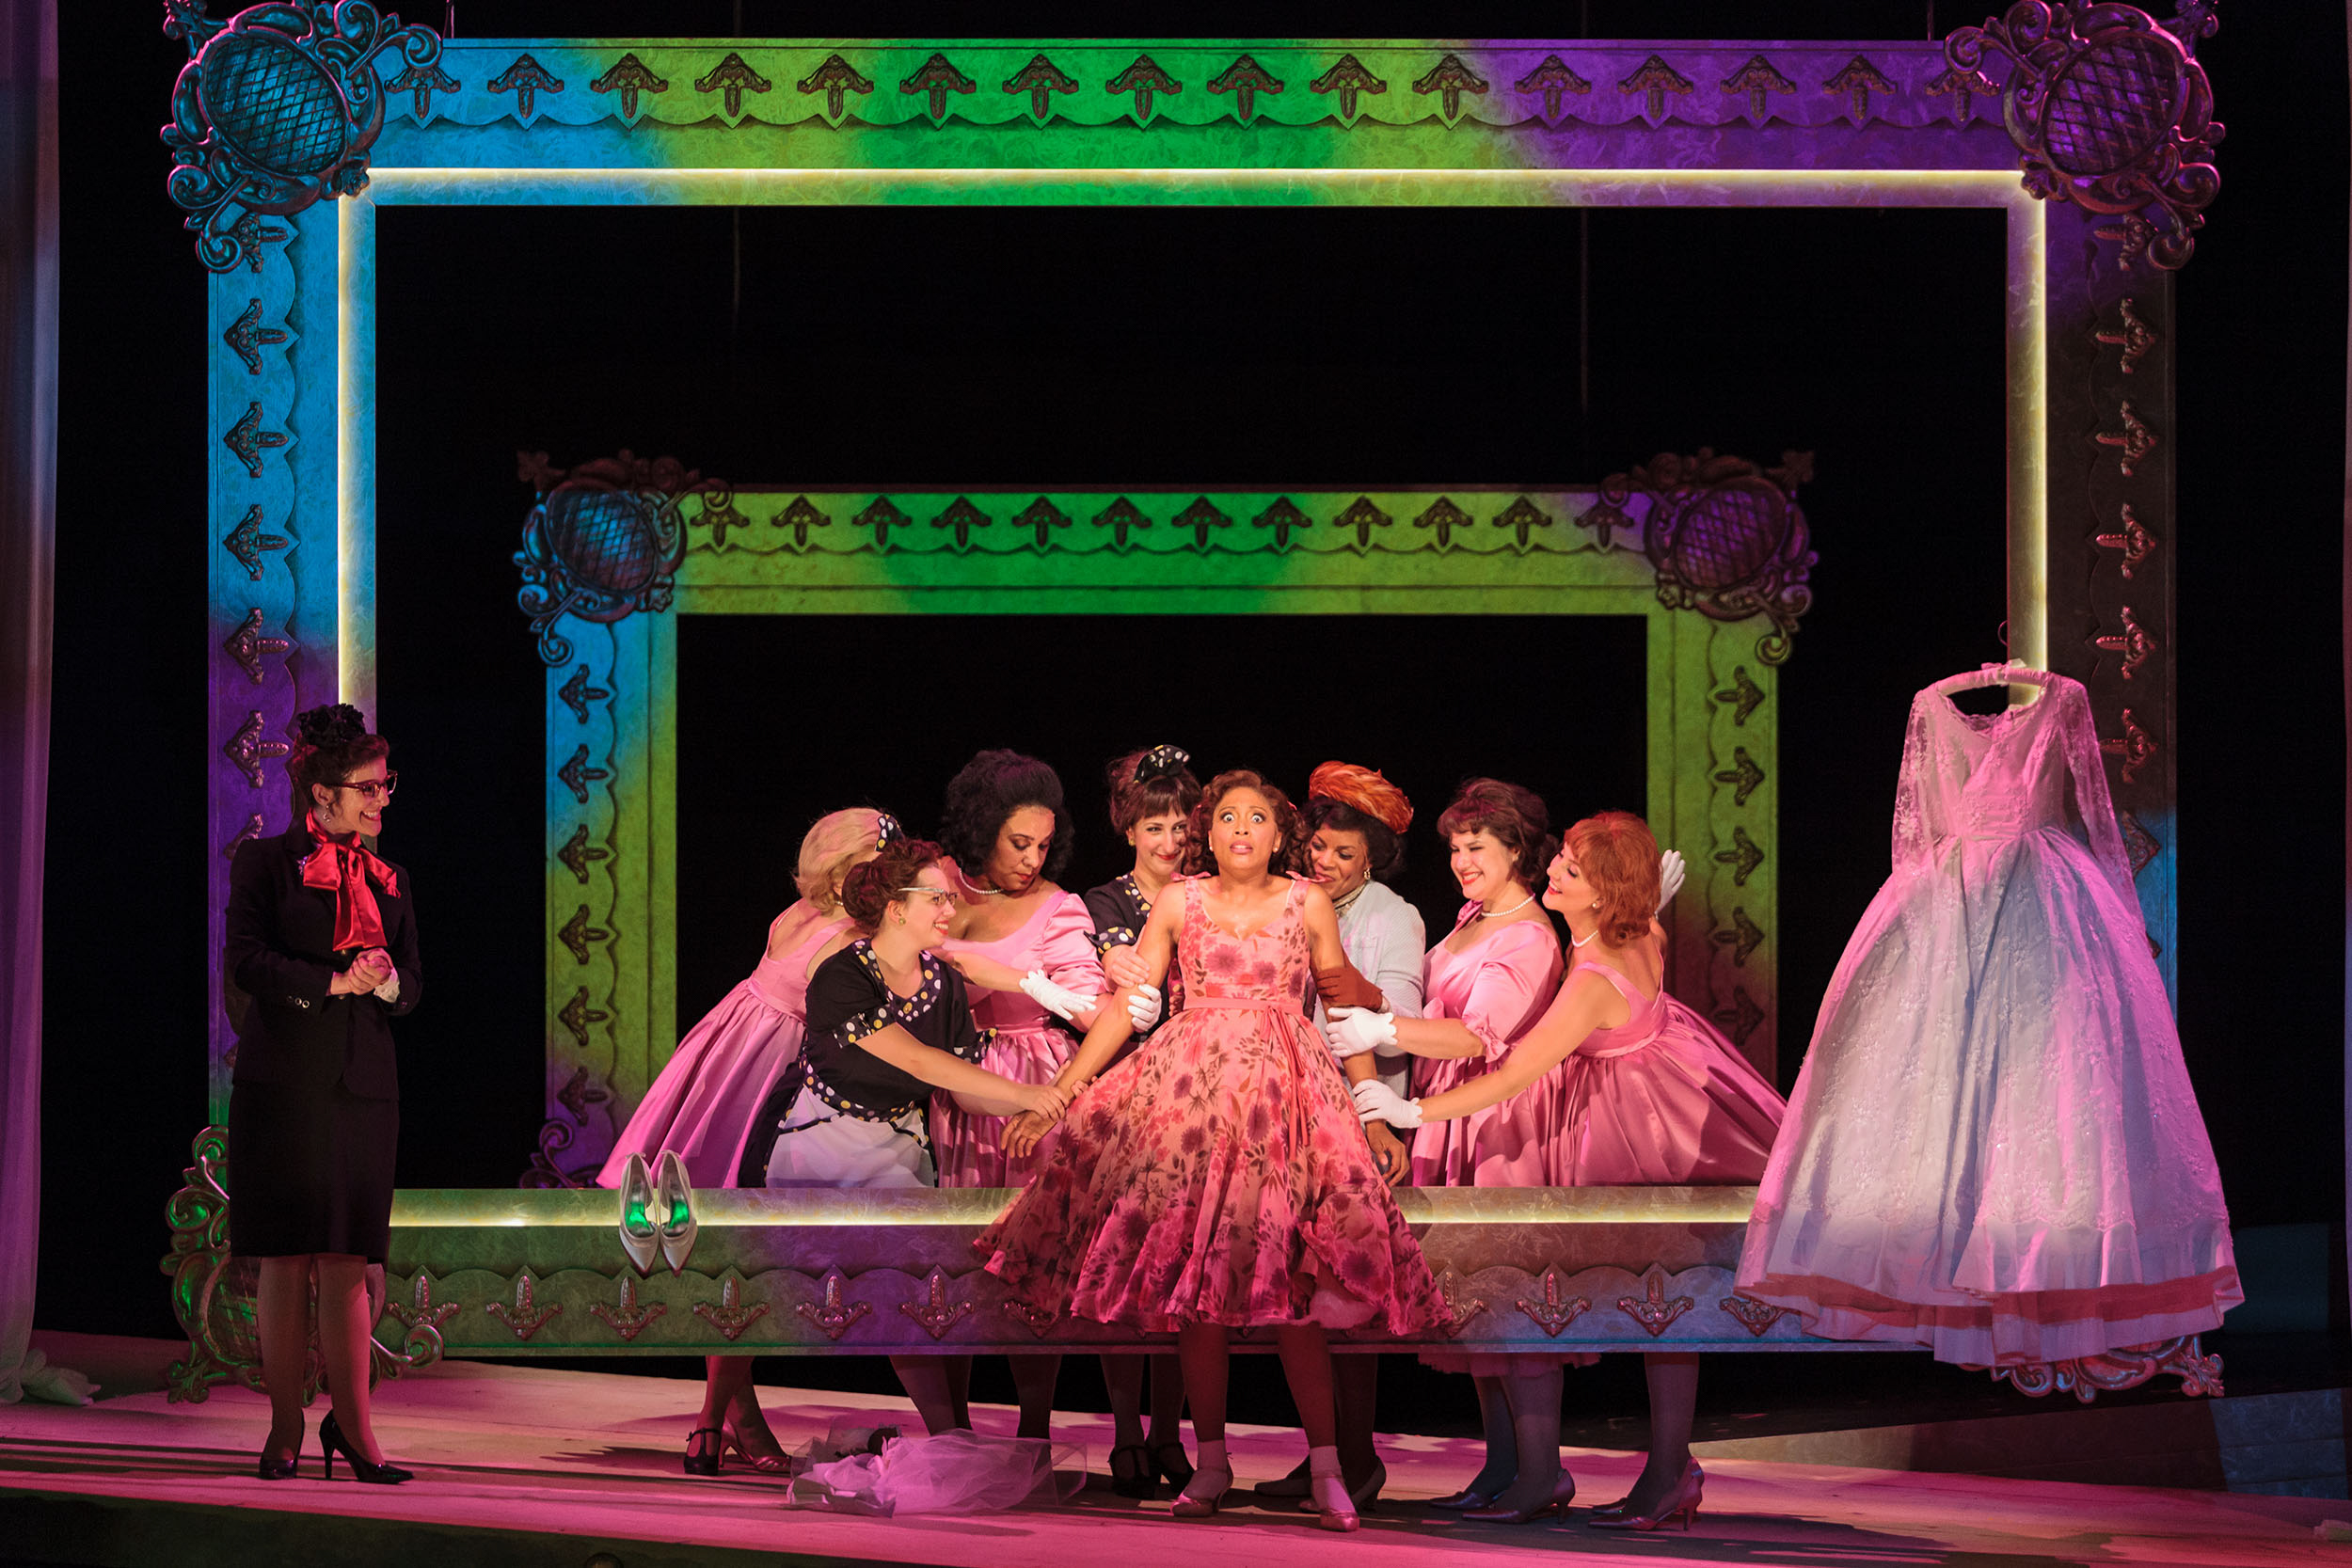 Jacqueline Echols as Giulietta with members of the ensemble in The Glimmerglass Festival's 2013 production of Verdi's  King for a Day .